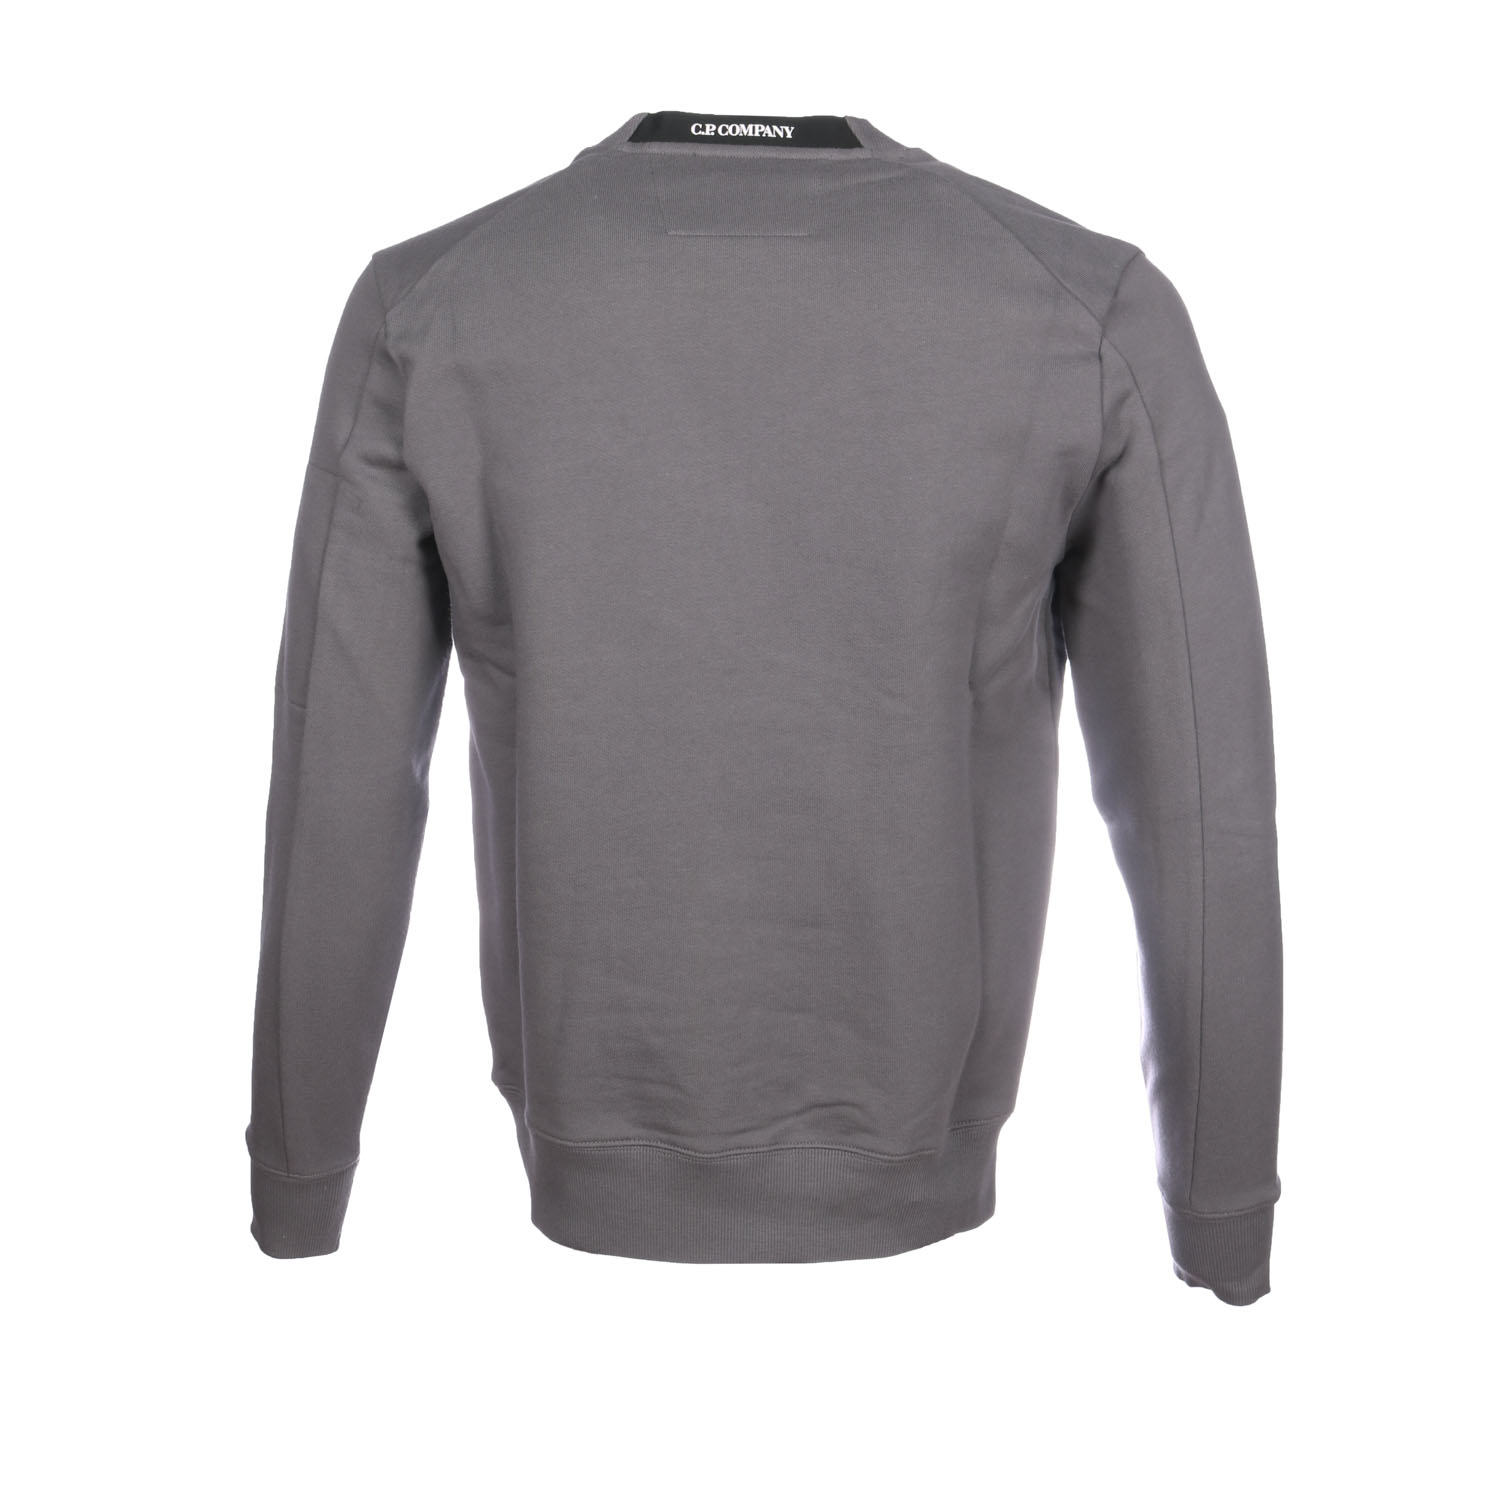 C.P. company sweater donkergrijs achter